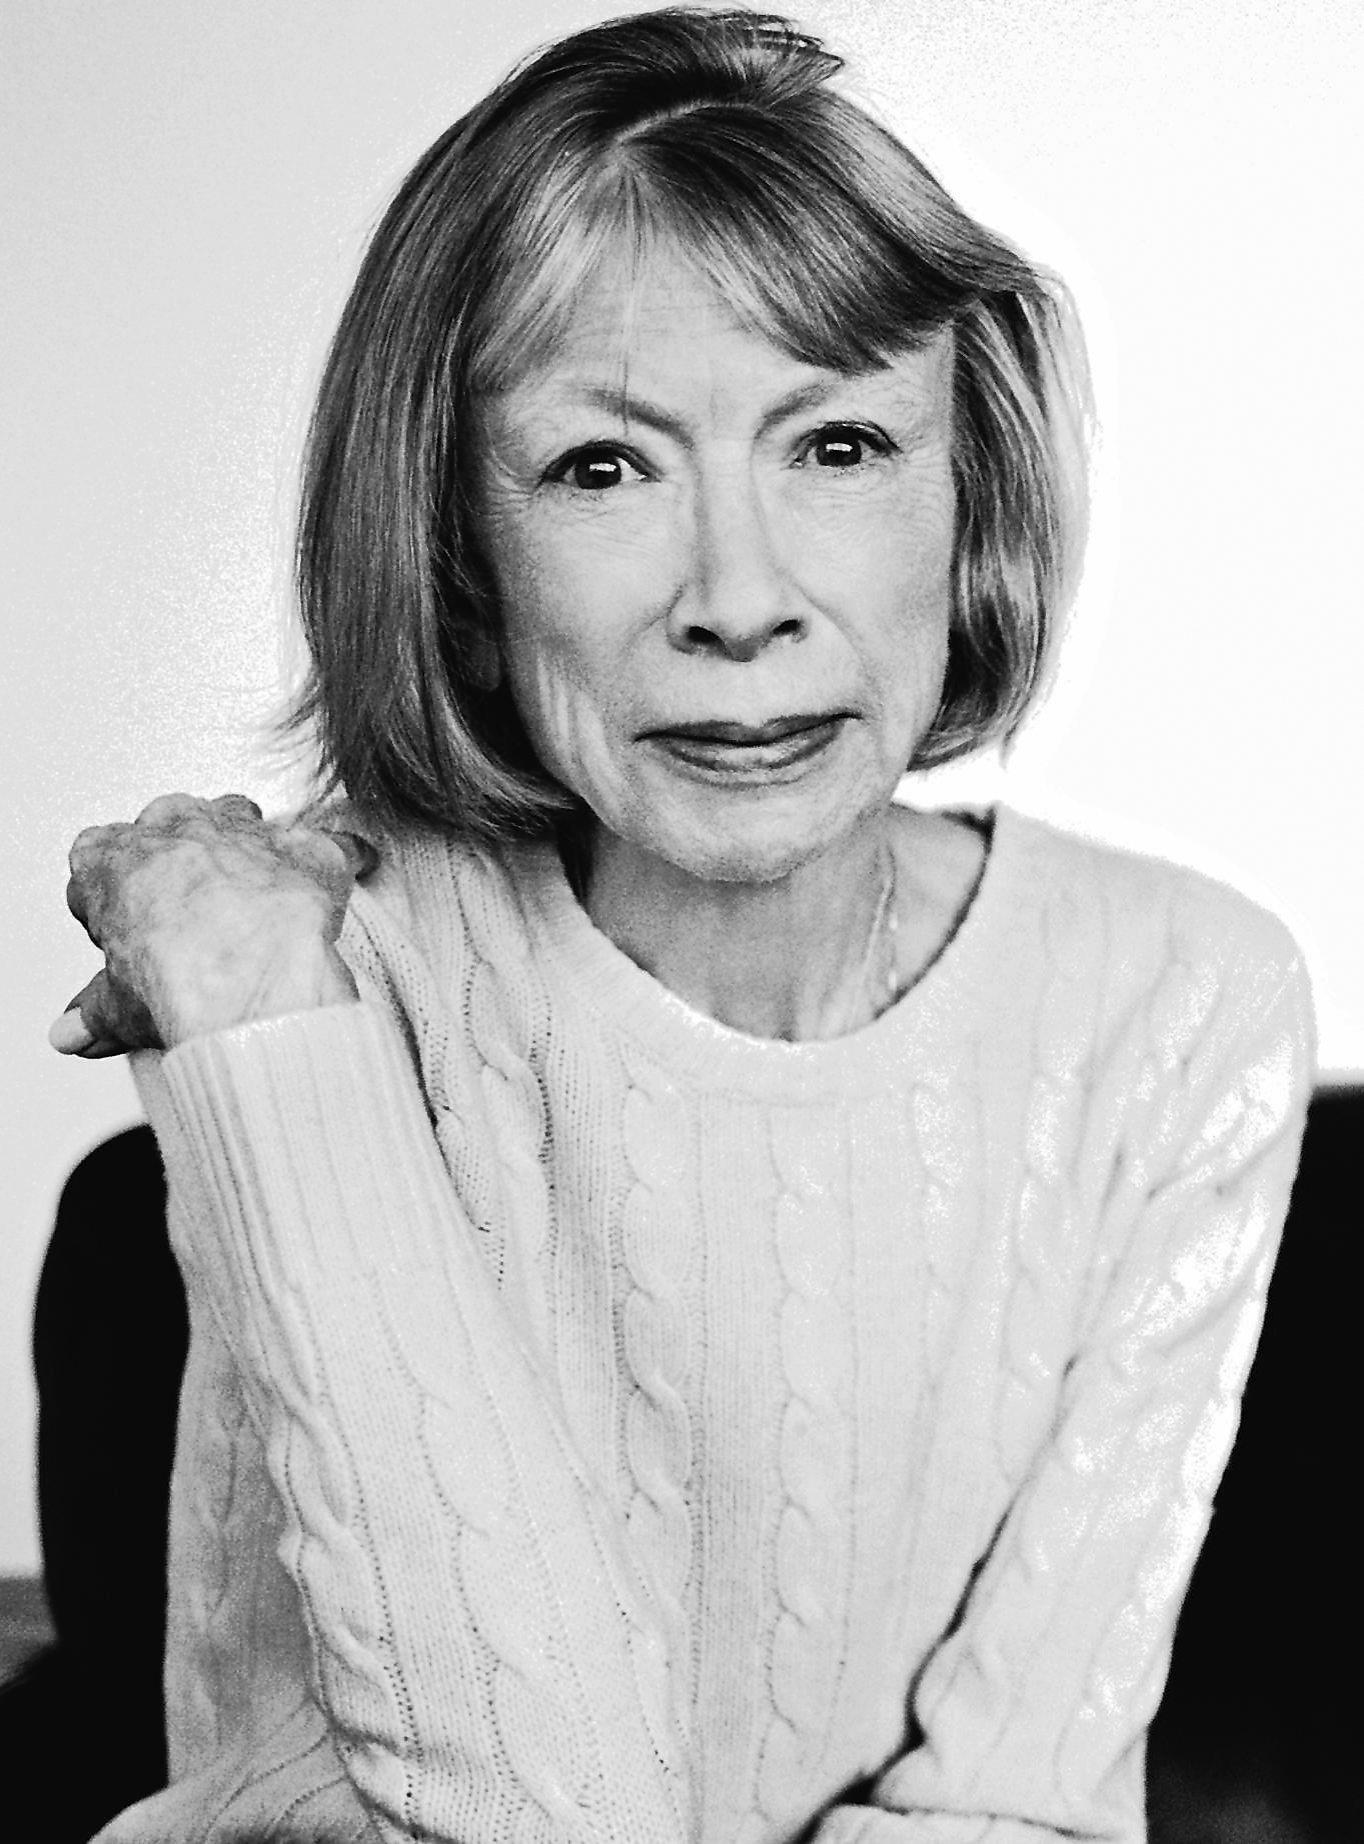 joan didion essayist Joan didion: joan didion, american novelist and essayist known for her lucid prose style and incisive depictions of social unrest and psychological fragmentation her notable books included the short novel play it as it lays and the memoir the year of magical thinking.